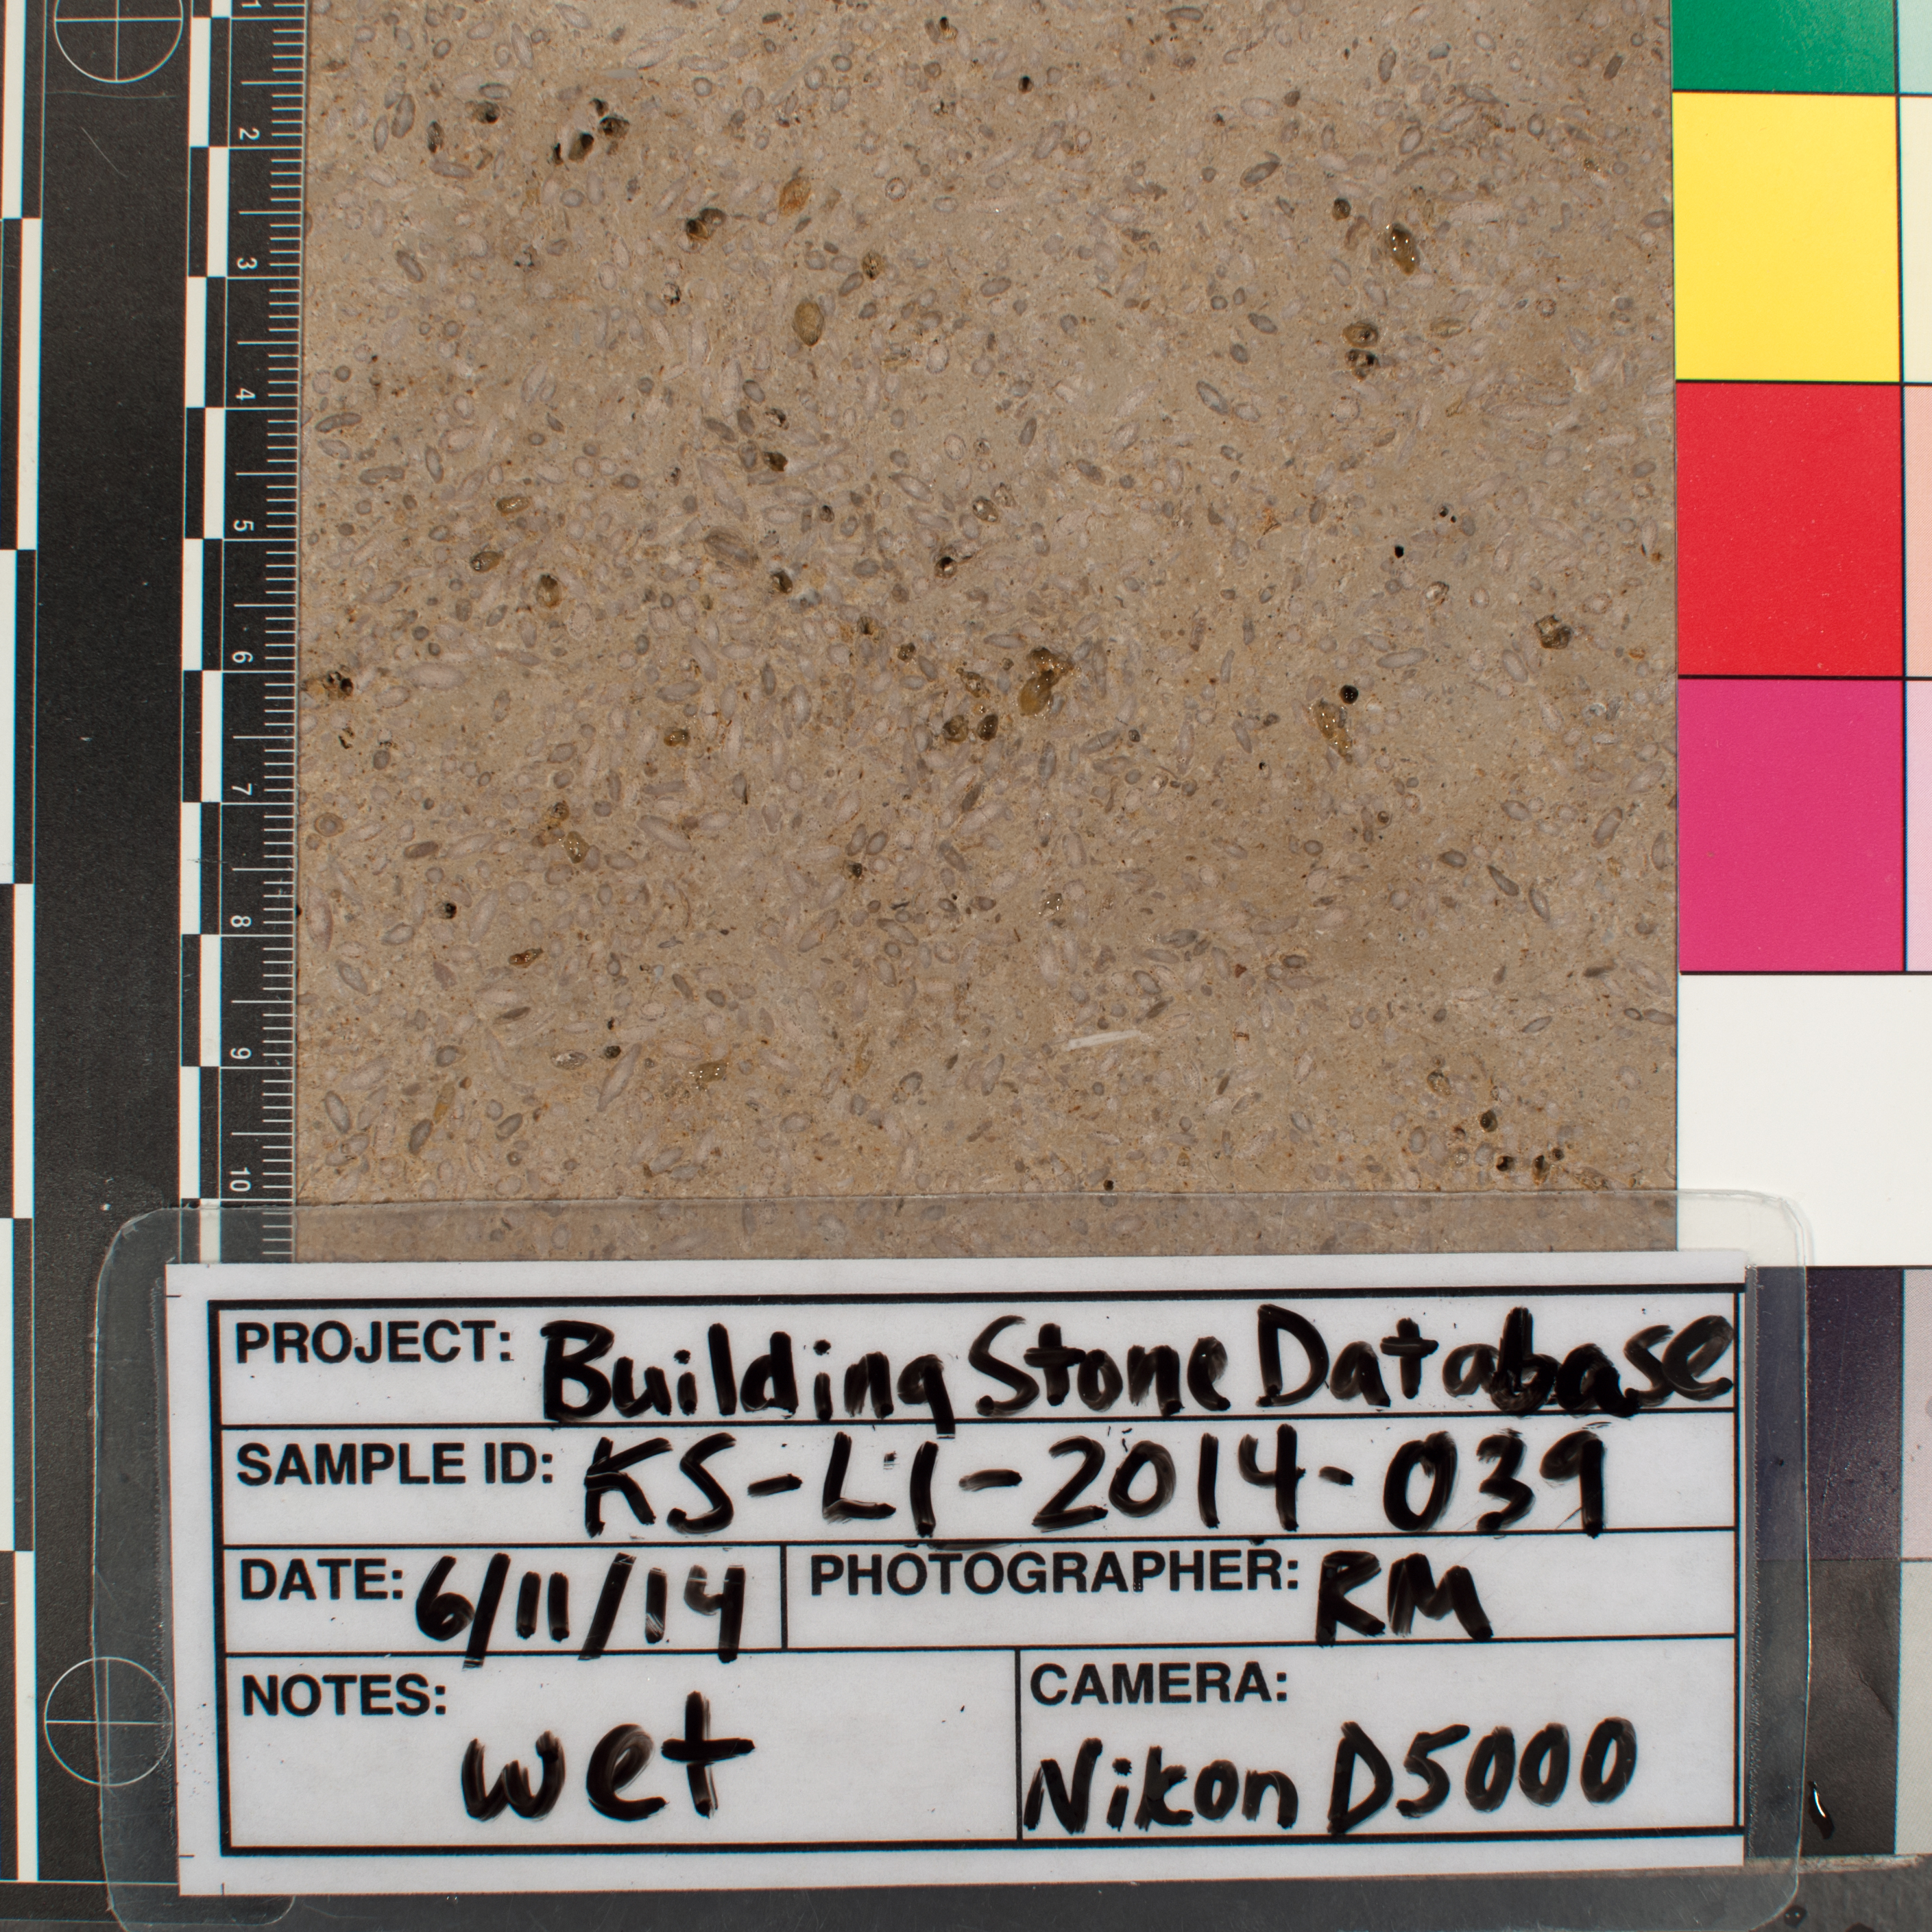 Close-up image of specimen in wet conditions. Finish: